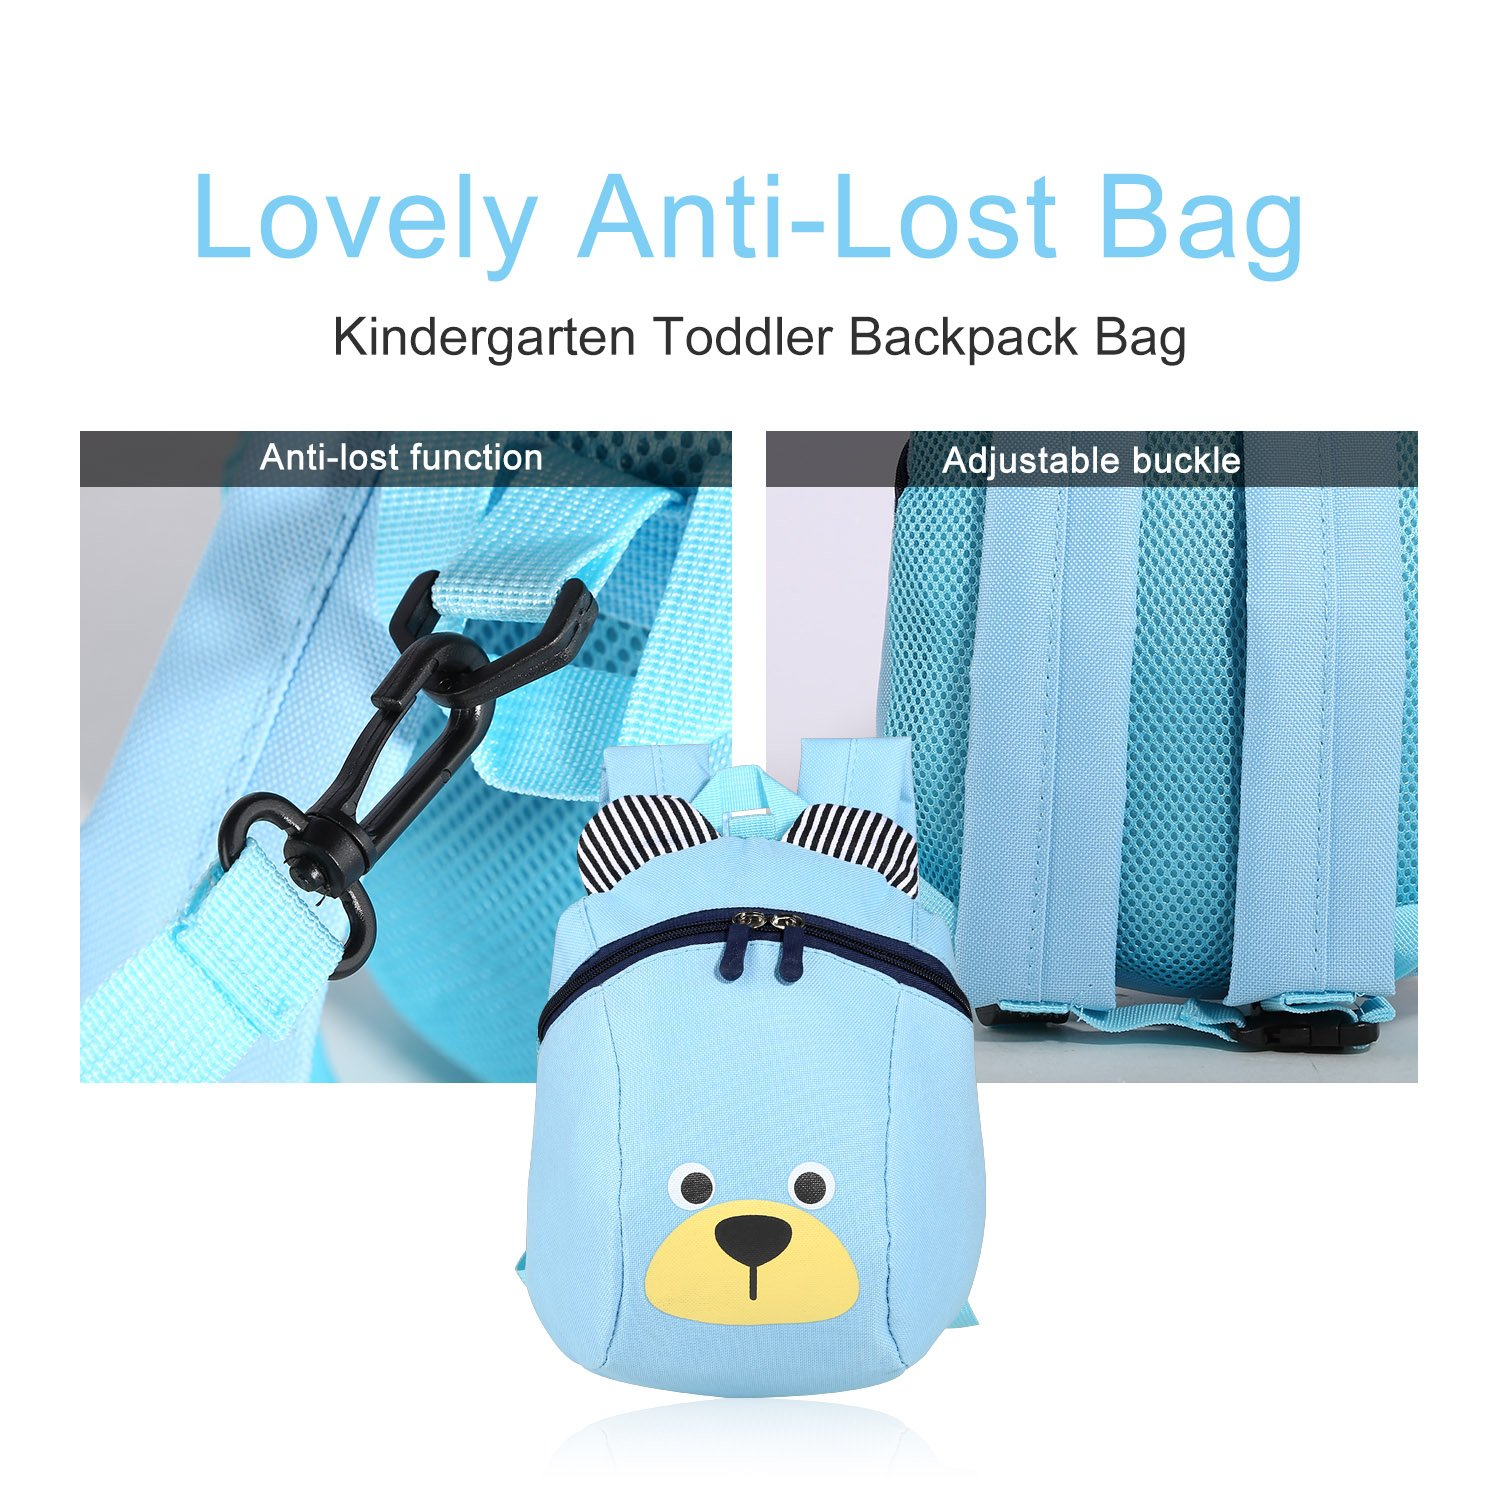 Cute Bear Small Toddler Kids Backpack and Lunch Box with Leash Set for Elementary School / Preschool Boys and Girls Which Under Age 6 Years, Mini and Light, Dirt-proof, Sky Blue